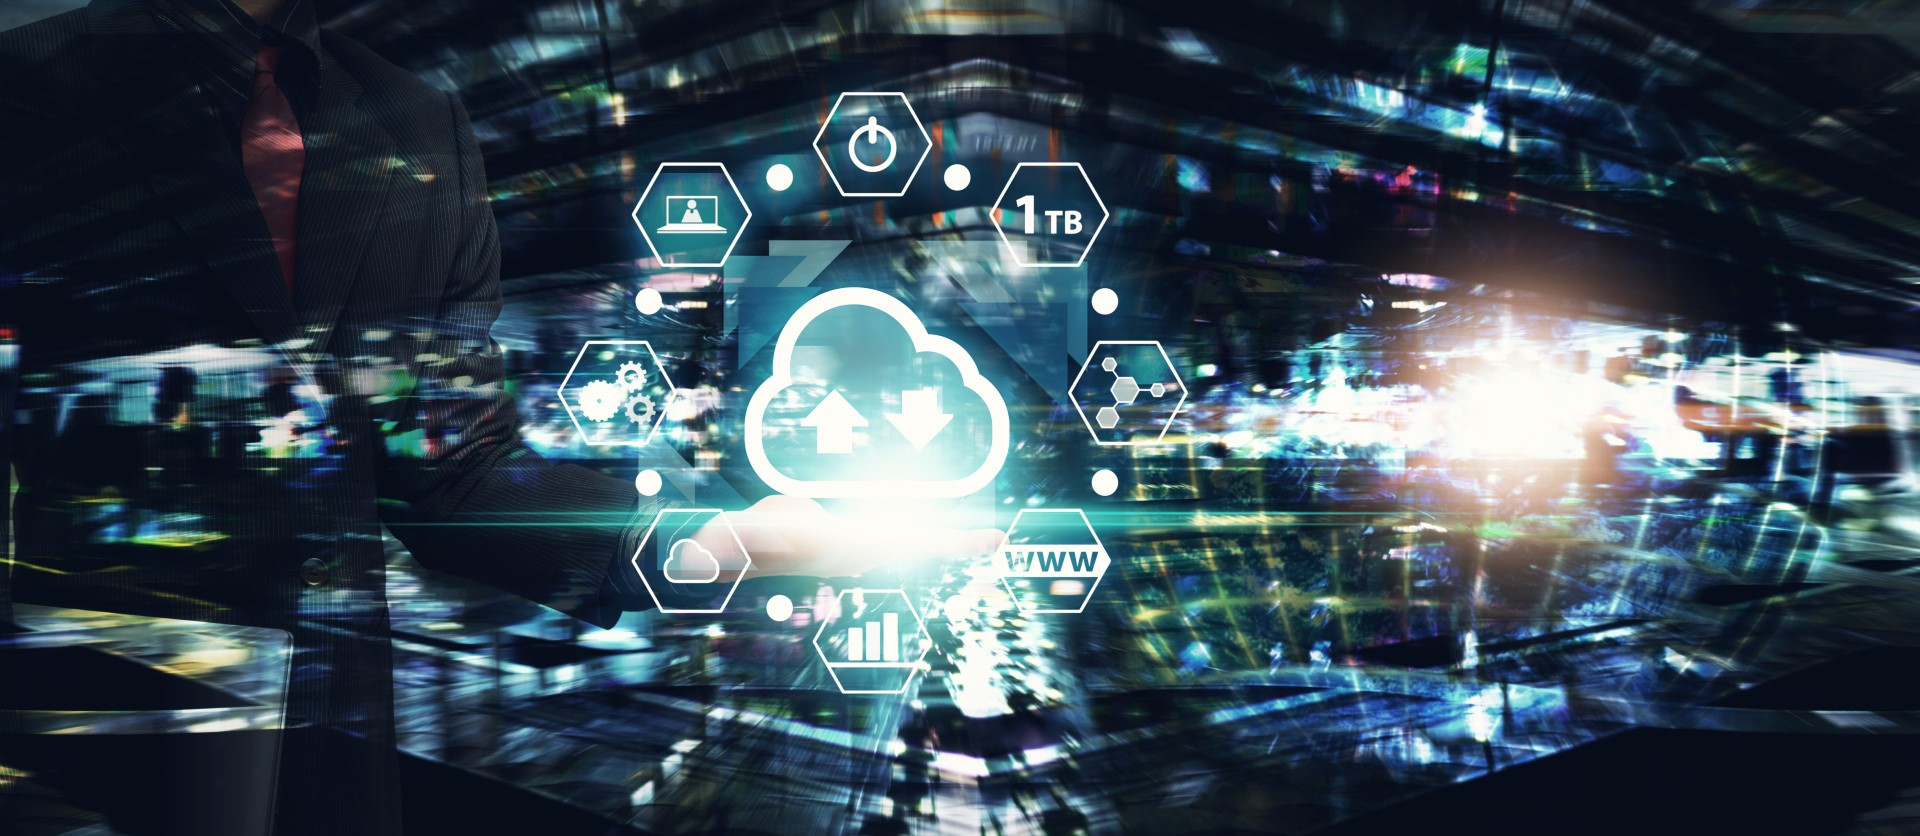 Cloud providers need to work on SLA's and reliability, says NATS CIO